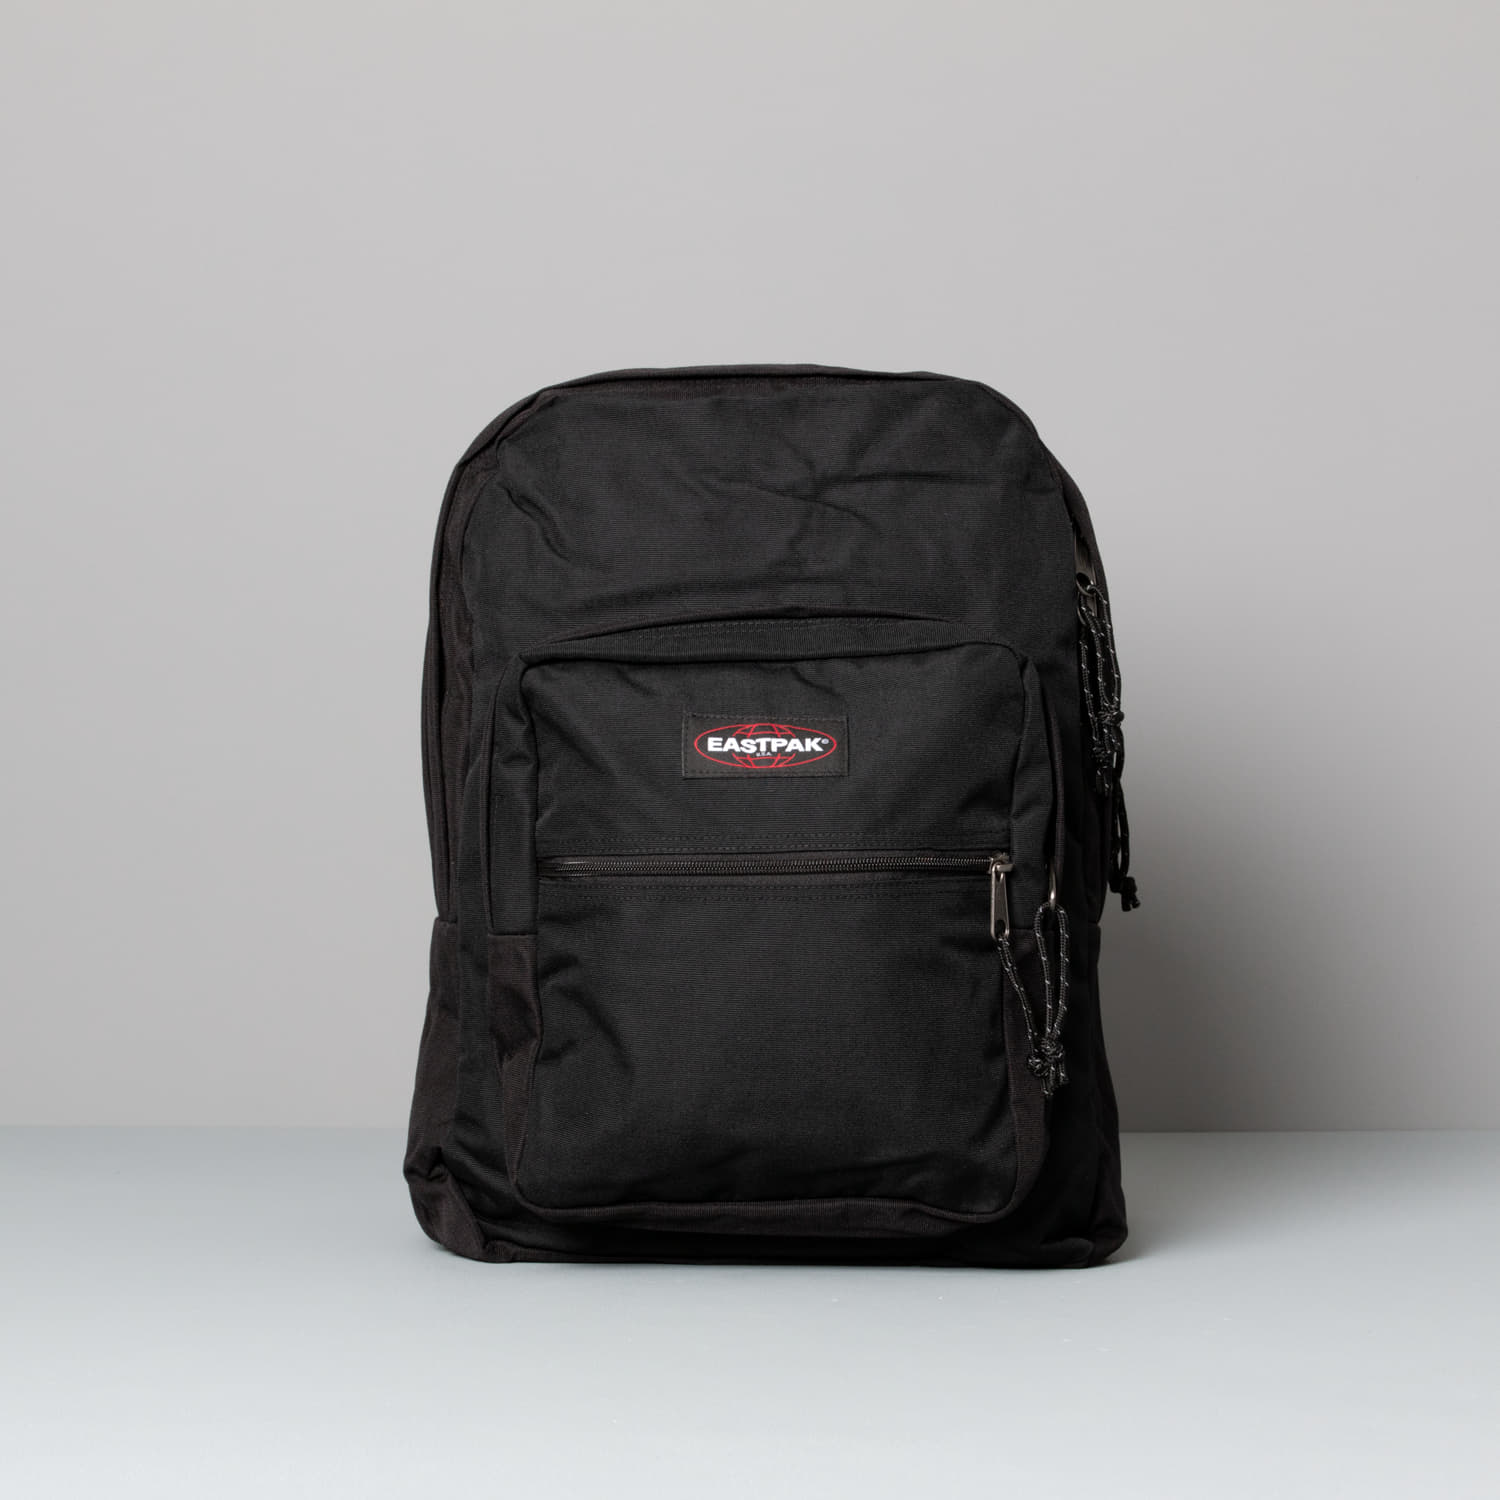 Batohy EASTPAK Pinnacle Backpack Black